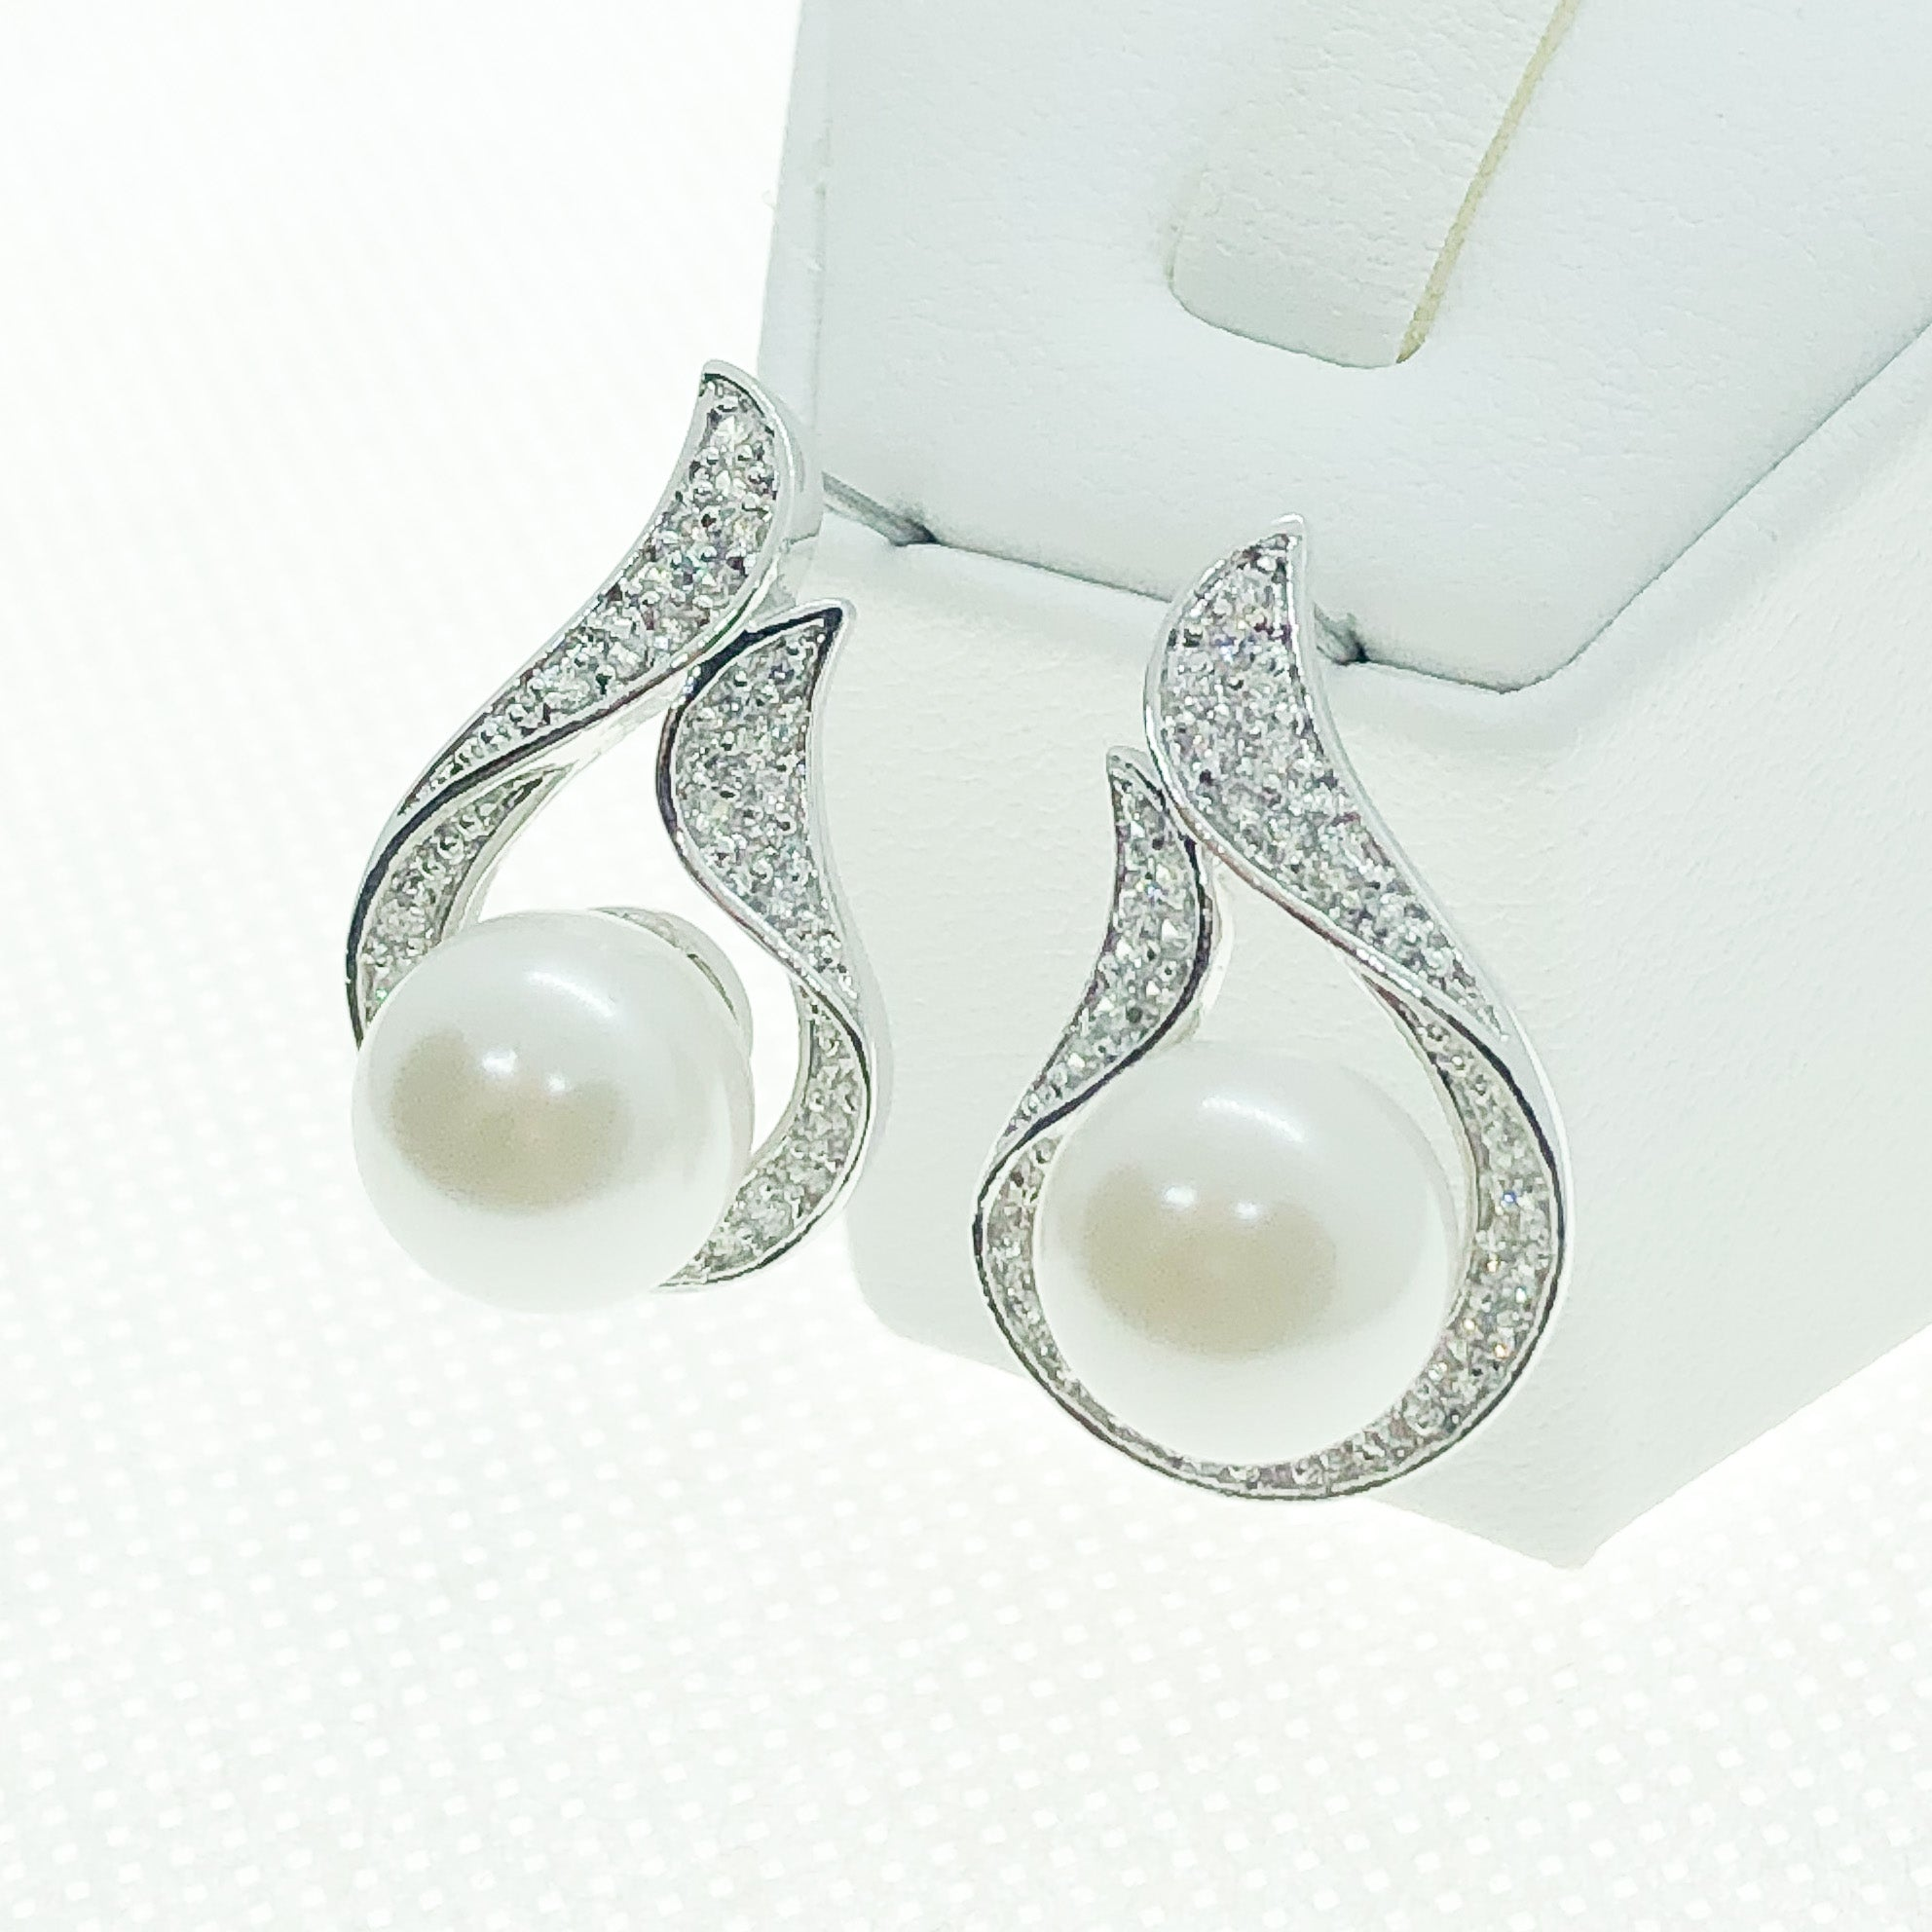 ID: E0559 Women Jewelry 18K White Gold GF Pearl with Clear Round Stones Earrings Fashion Lady Drop Stud